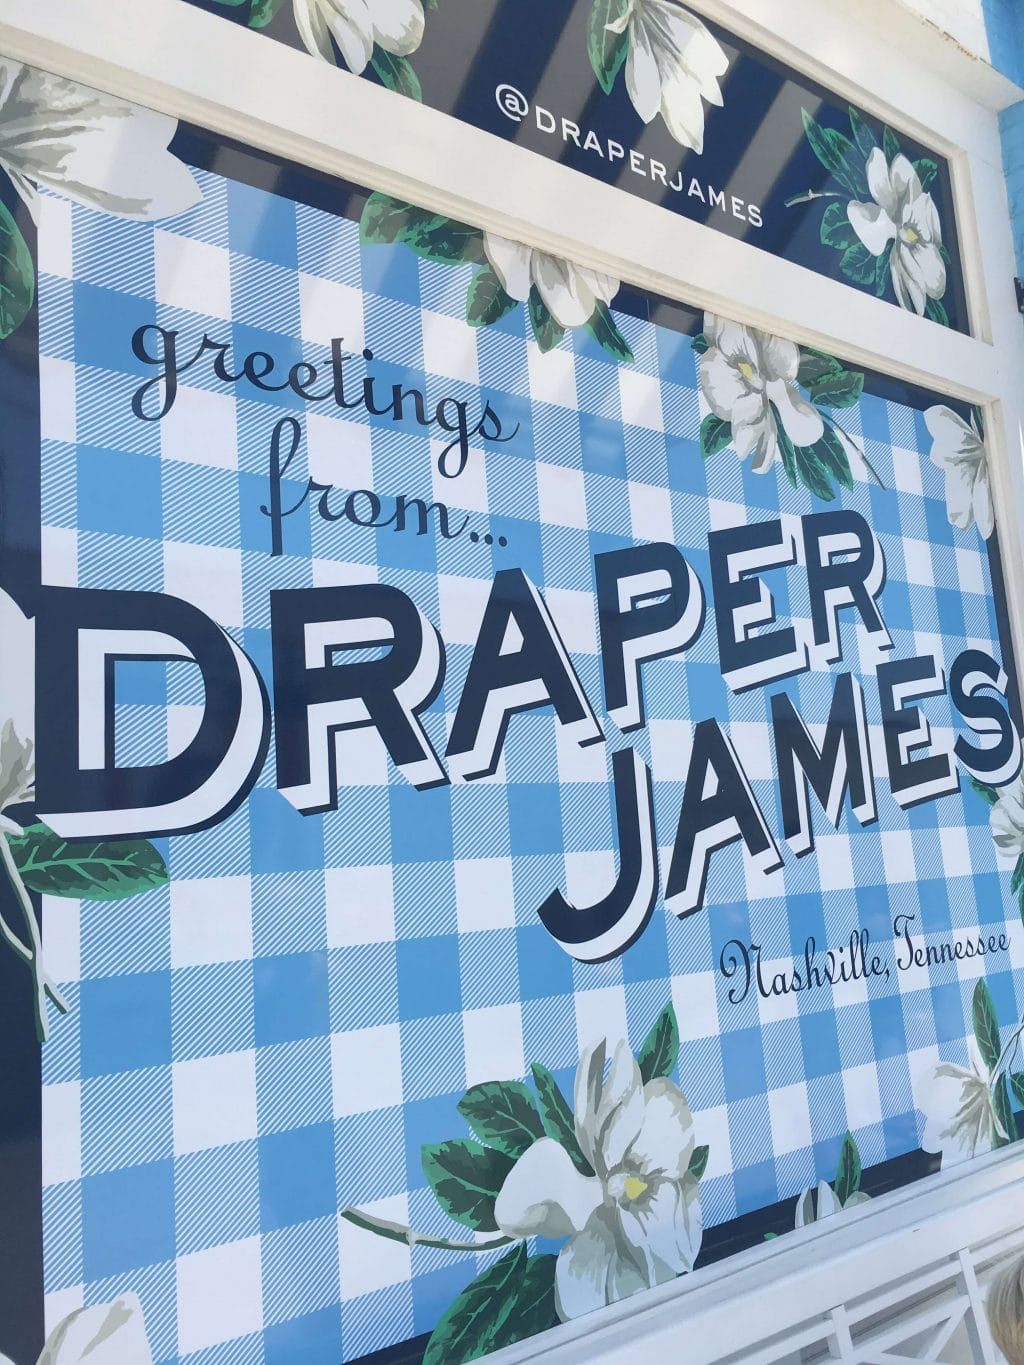 Draper James Nashville, TN